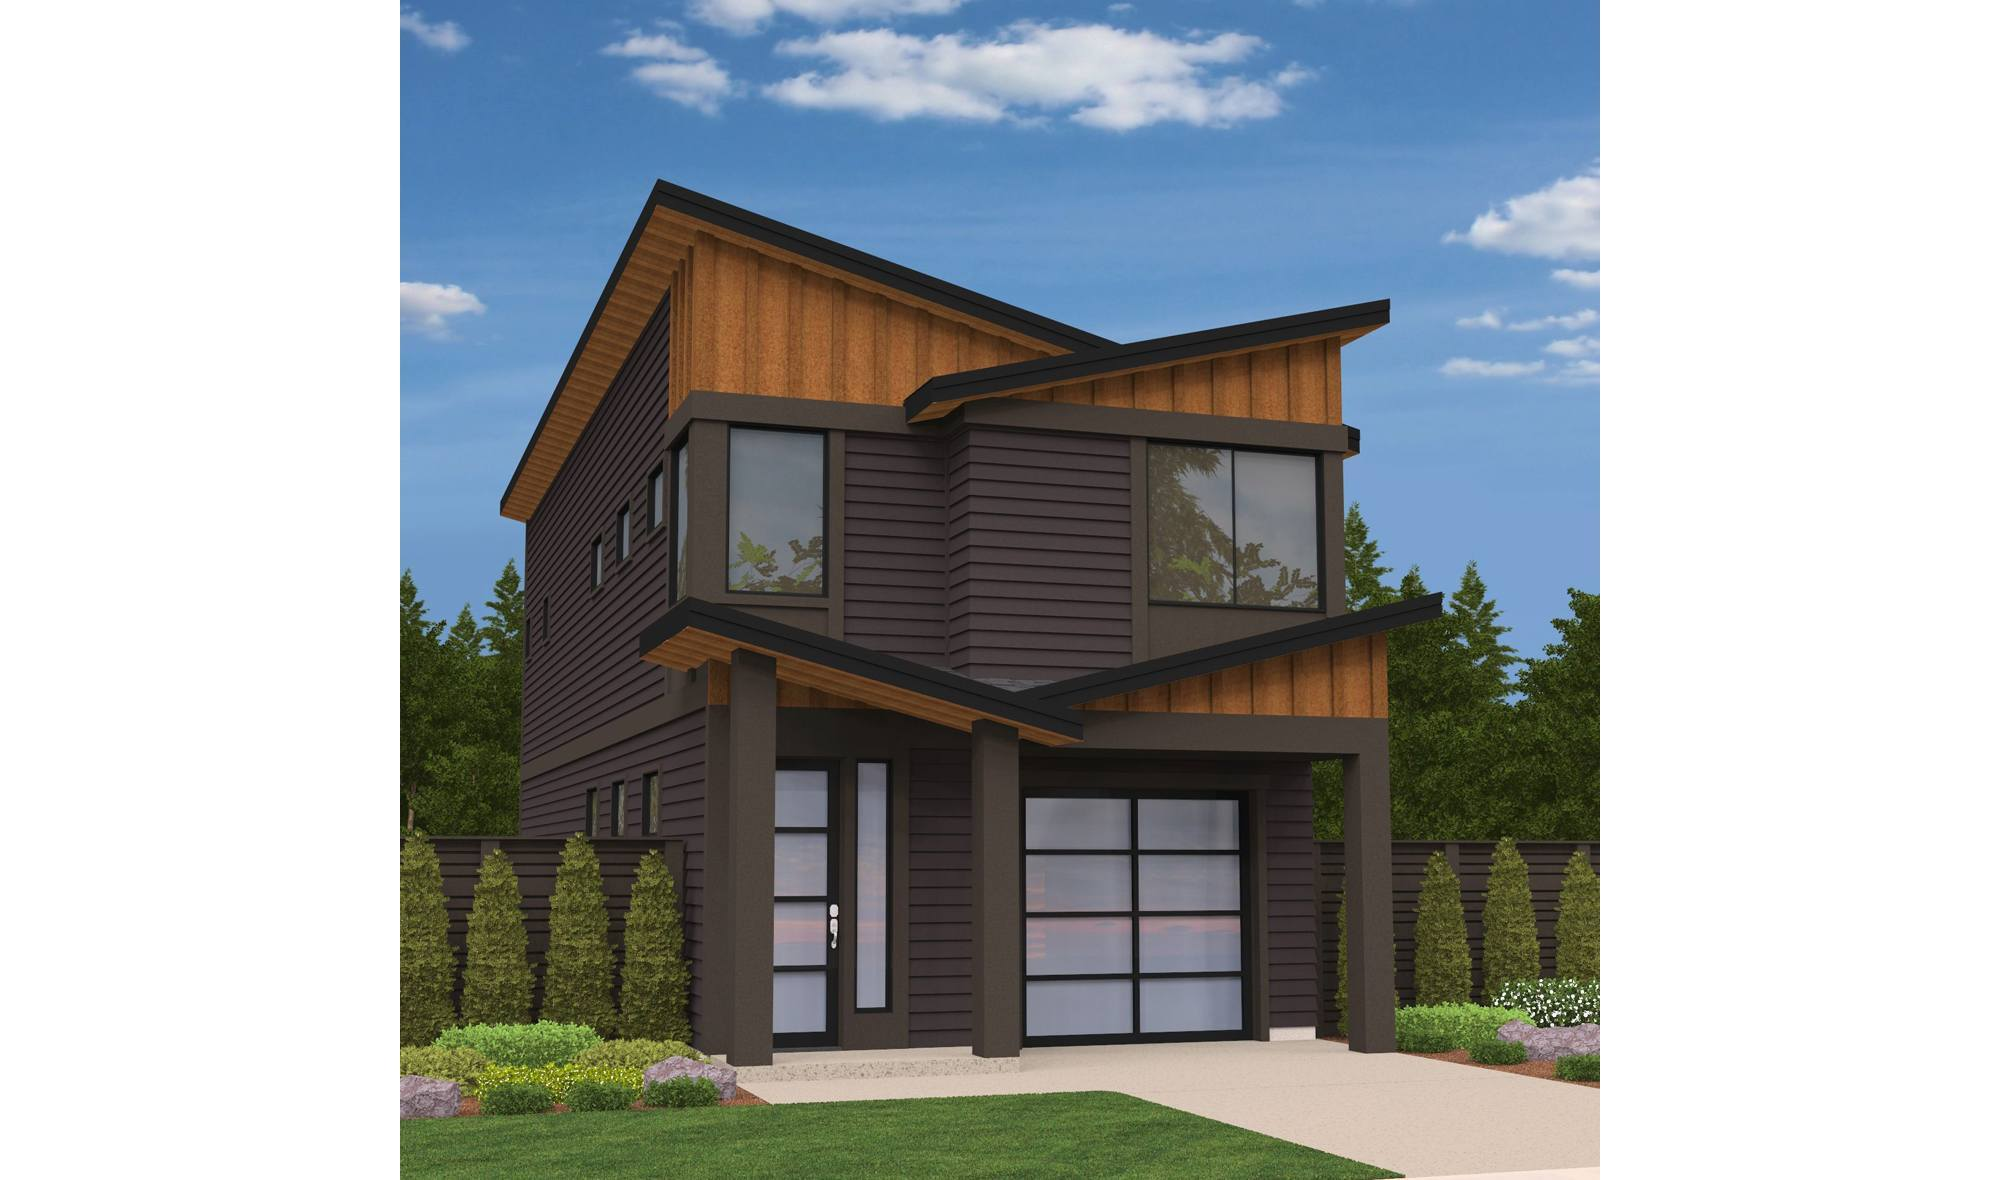 Small House Plans   Modern Small Home Designs & Floor Plans on miami area house plans, miami style decorating, miami style bathroom, miami style homes, miami style bedroom, miami style furniture,